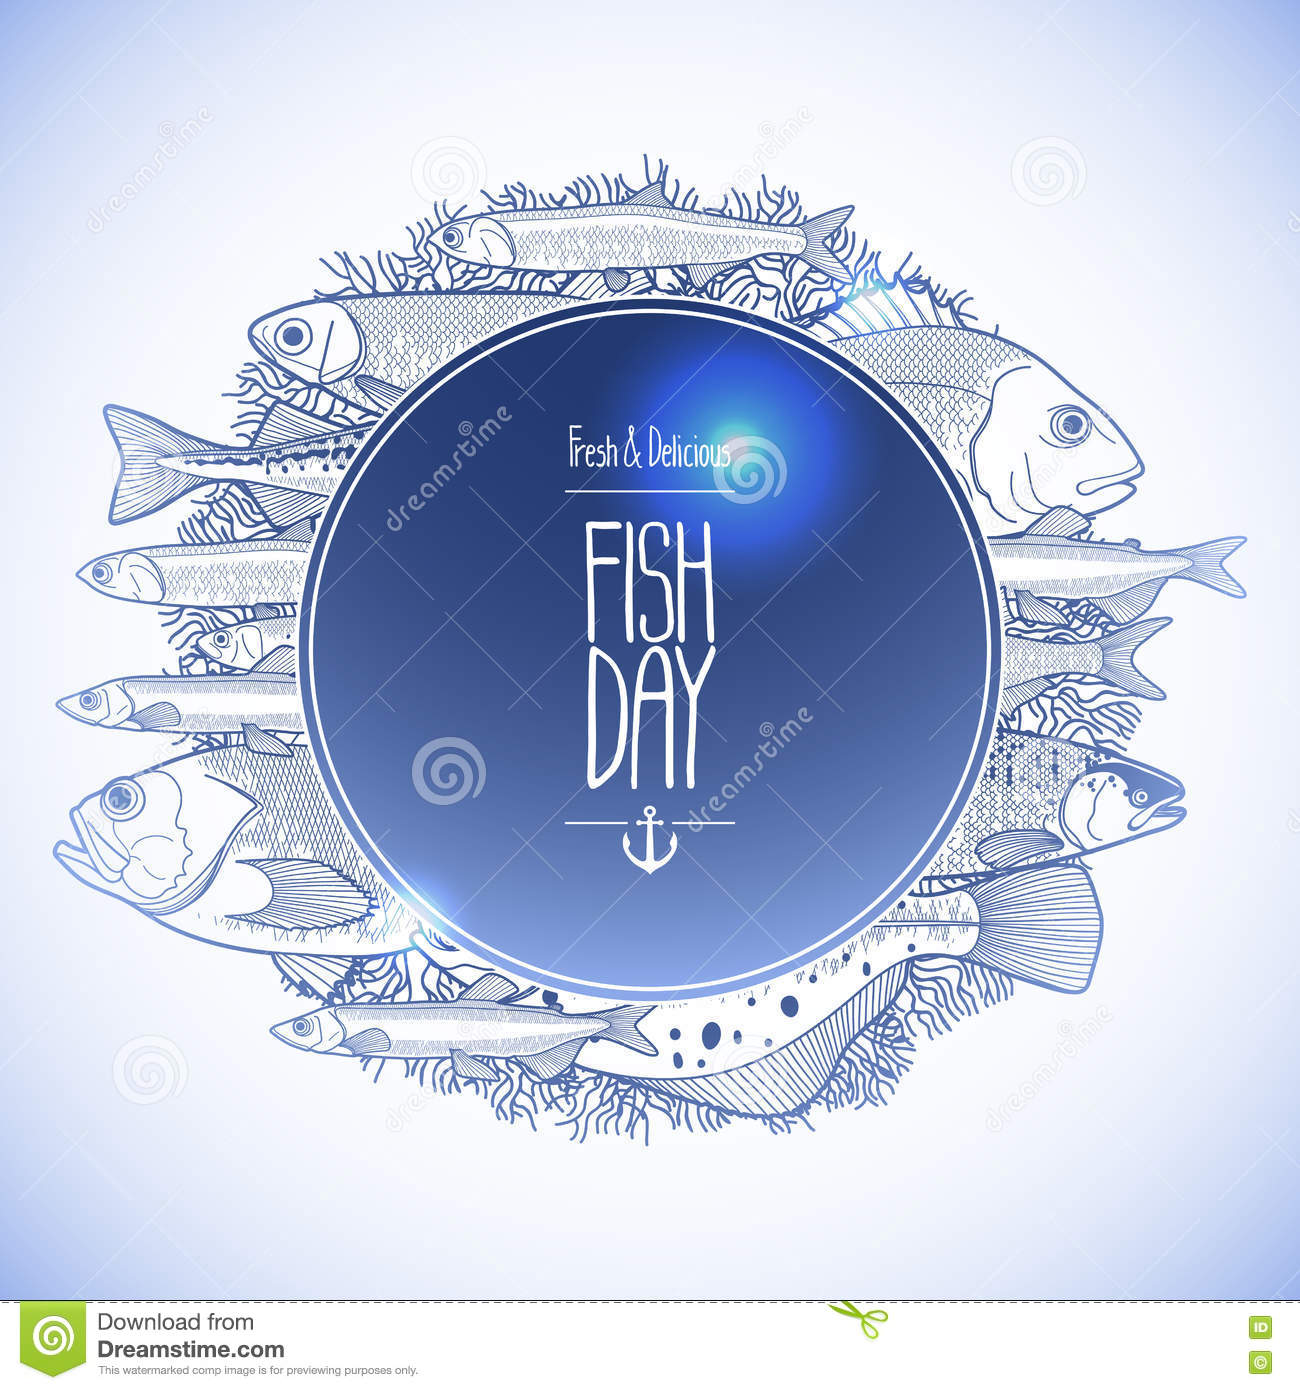 Line Art Card Design : Graphic ocean fish design stock vector illustration of